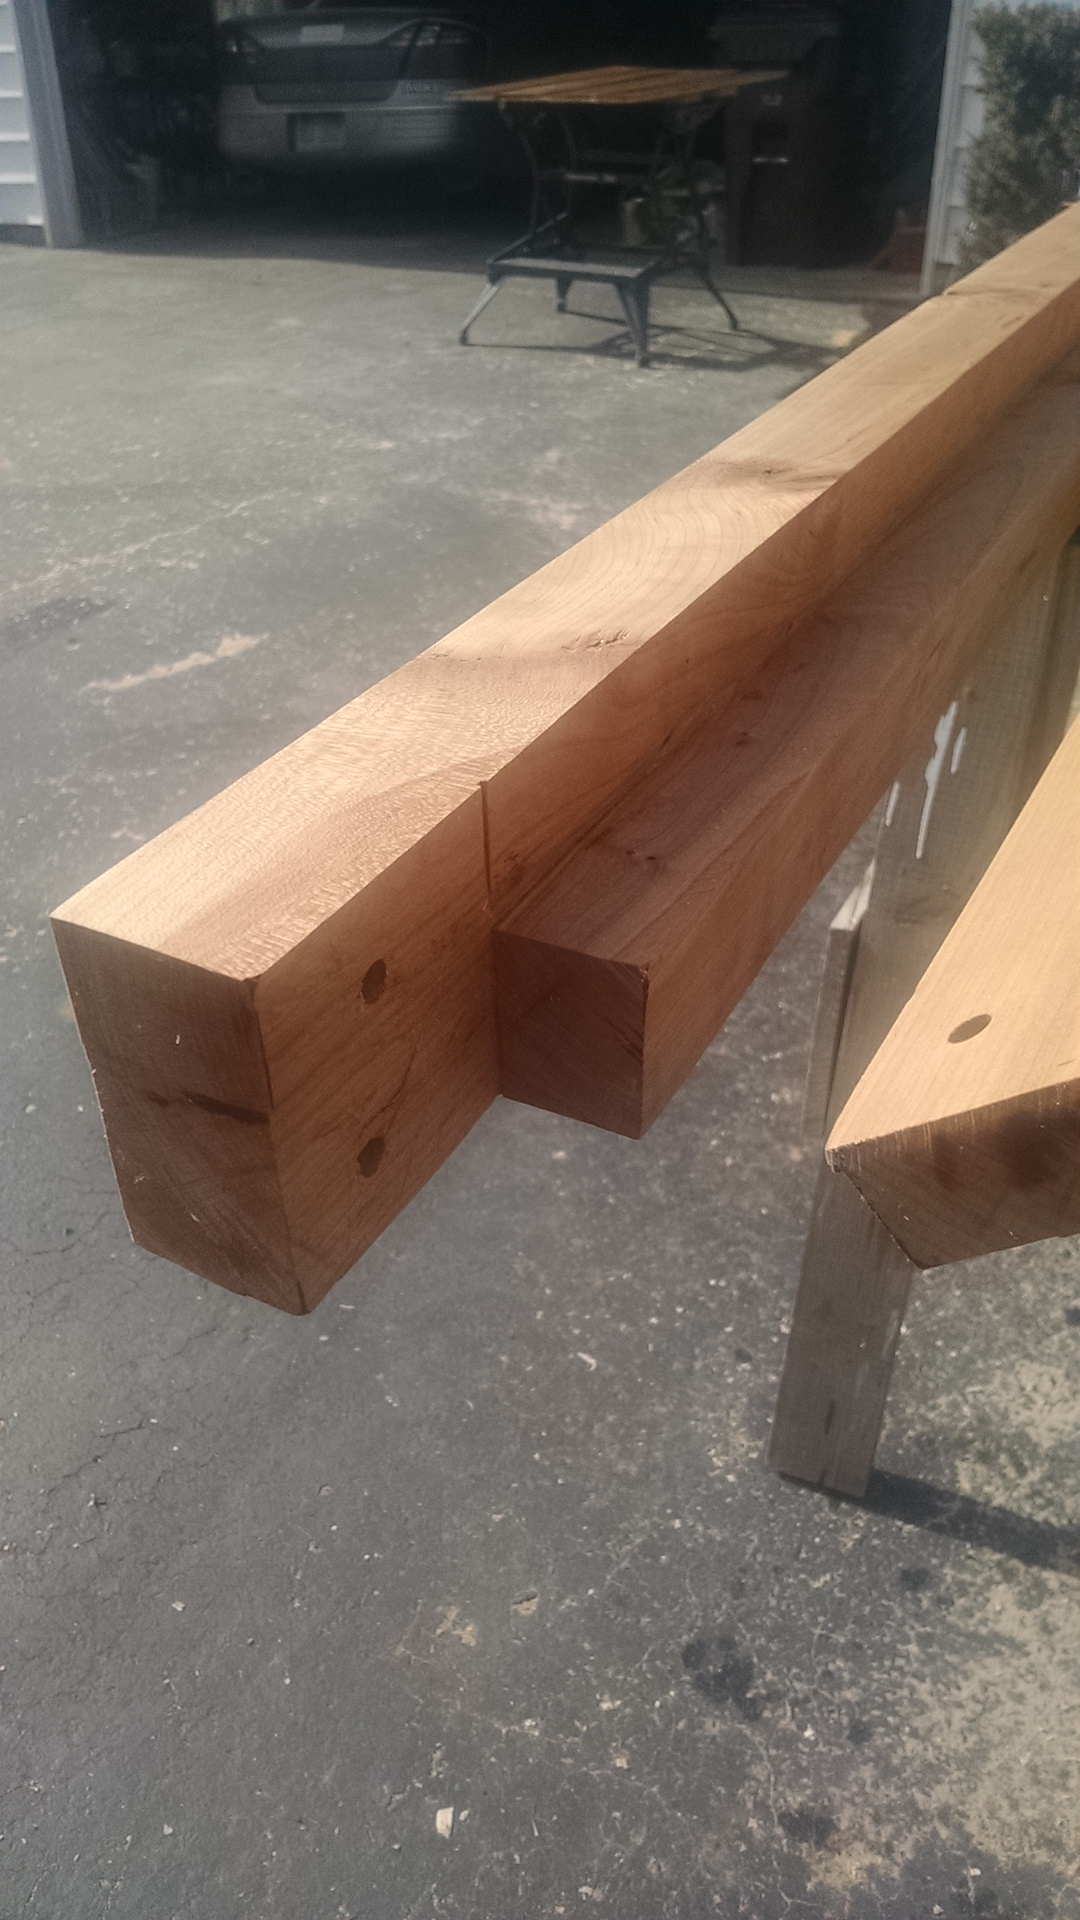 the loft beams were cut to provide a ledge for the floor planks and to ease attachment (bolting) to the studs